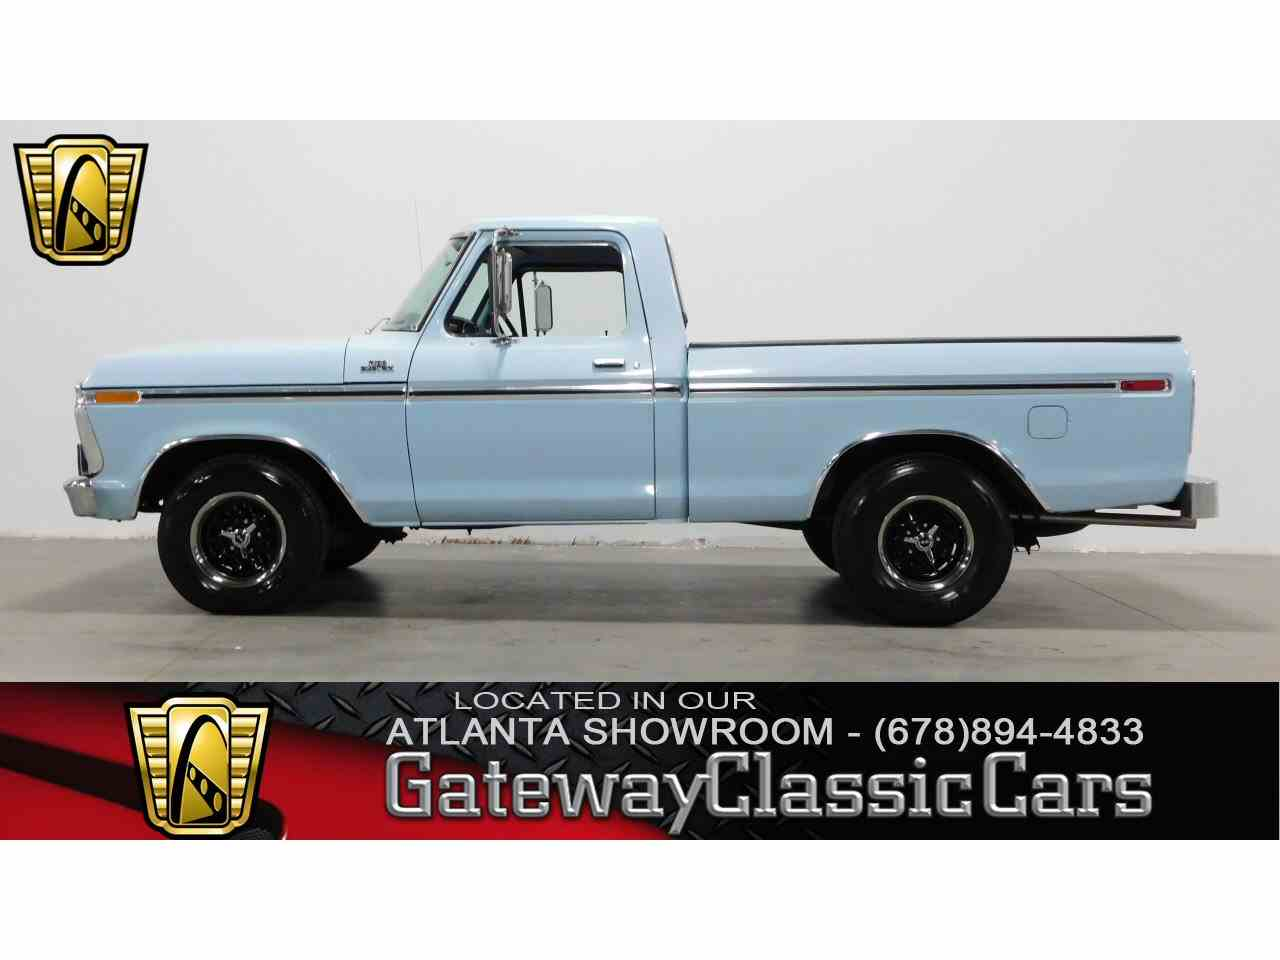 1977 to 1979 ford f100 for sale on classiccars picture of 77 f100 kf68 publicscrutiny Gallery